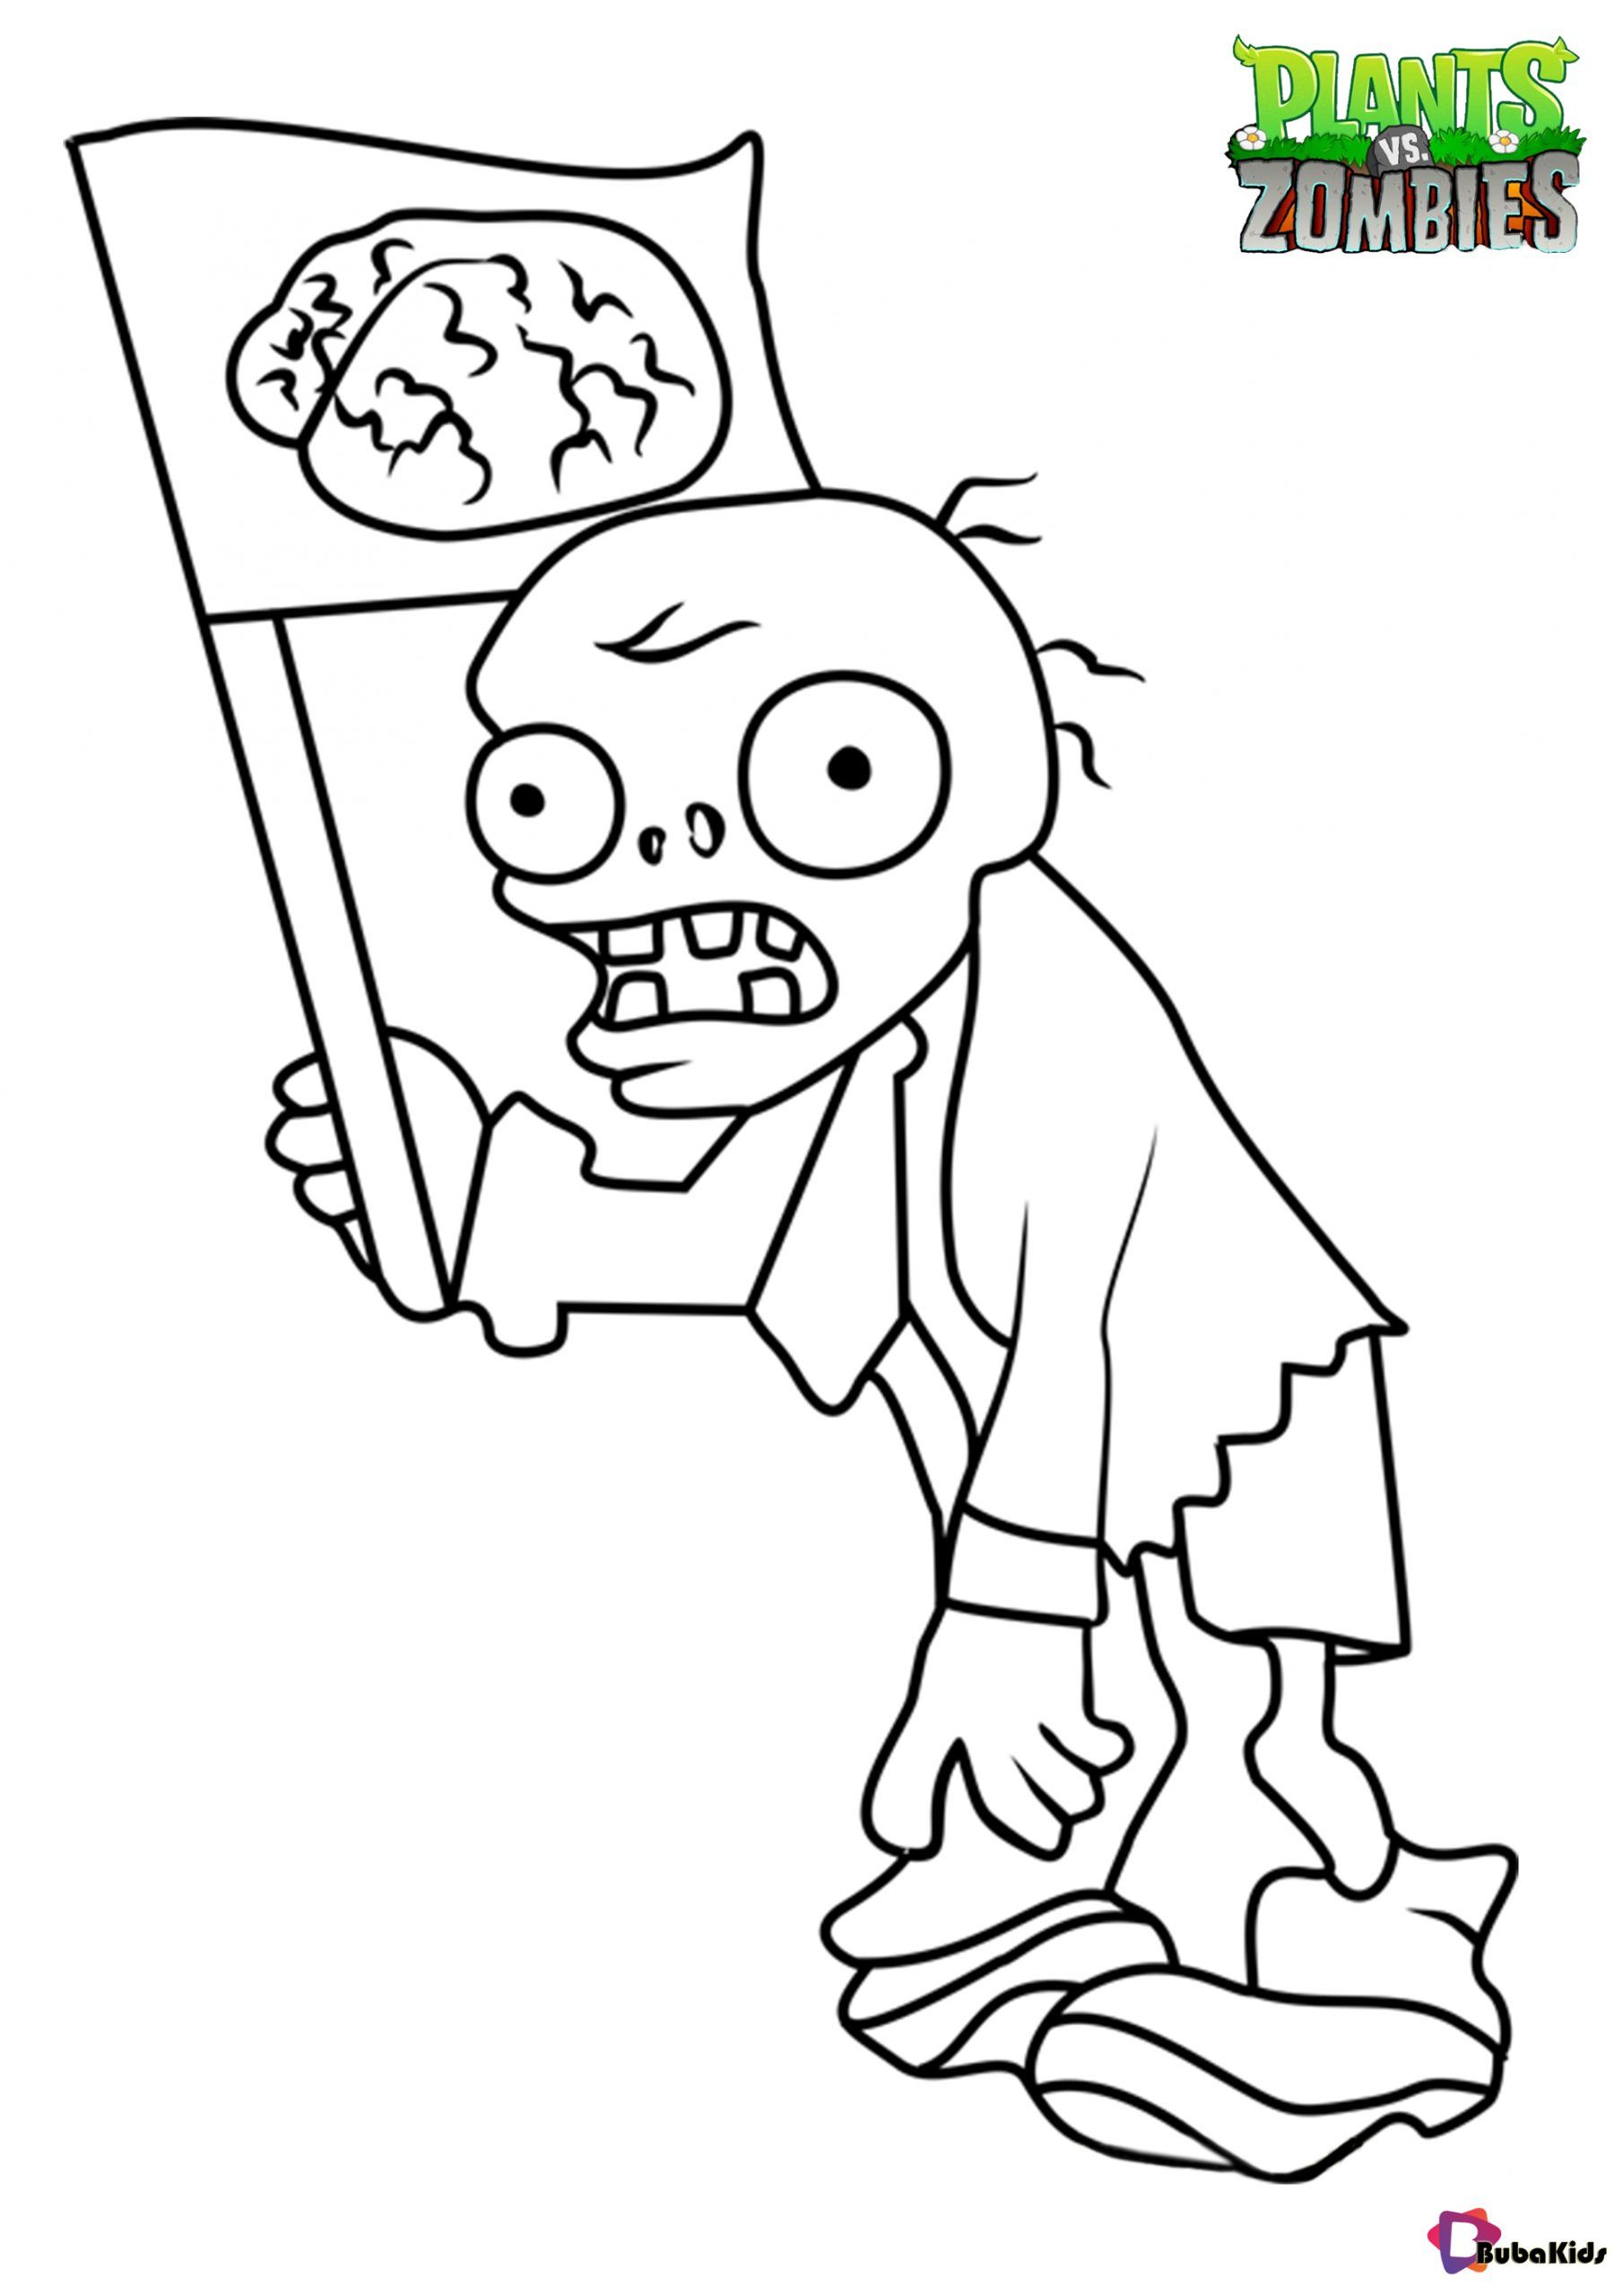 Plants Vs Zombies Flag Zombie Coloring Page Collection Of Cartoon Coloring Pages For Teenage Pr Coloring Pages Halloween Coloring Pages Cartoon Coloring Pages